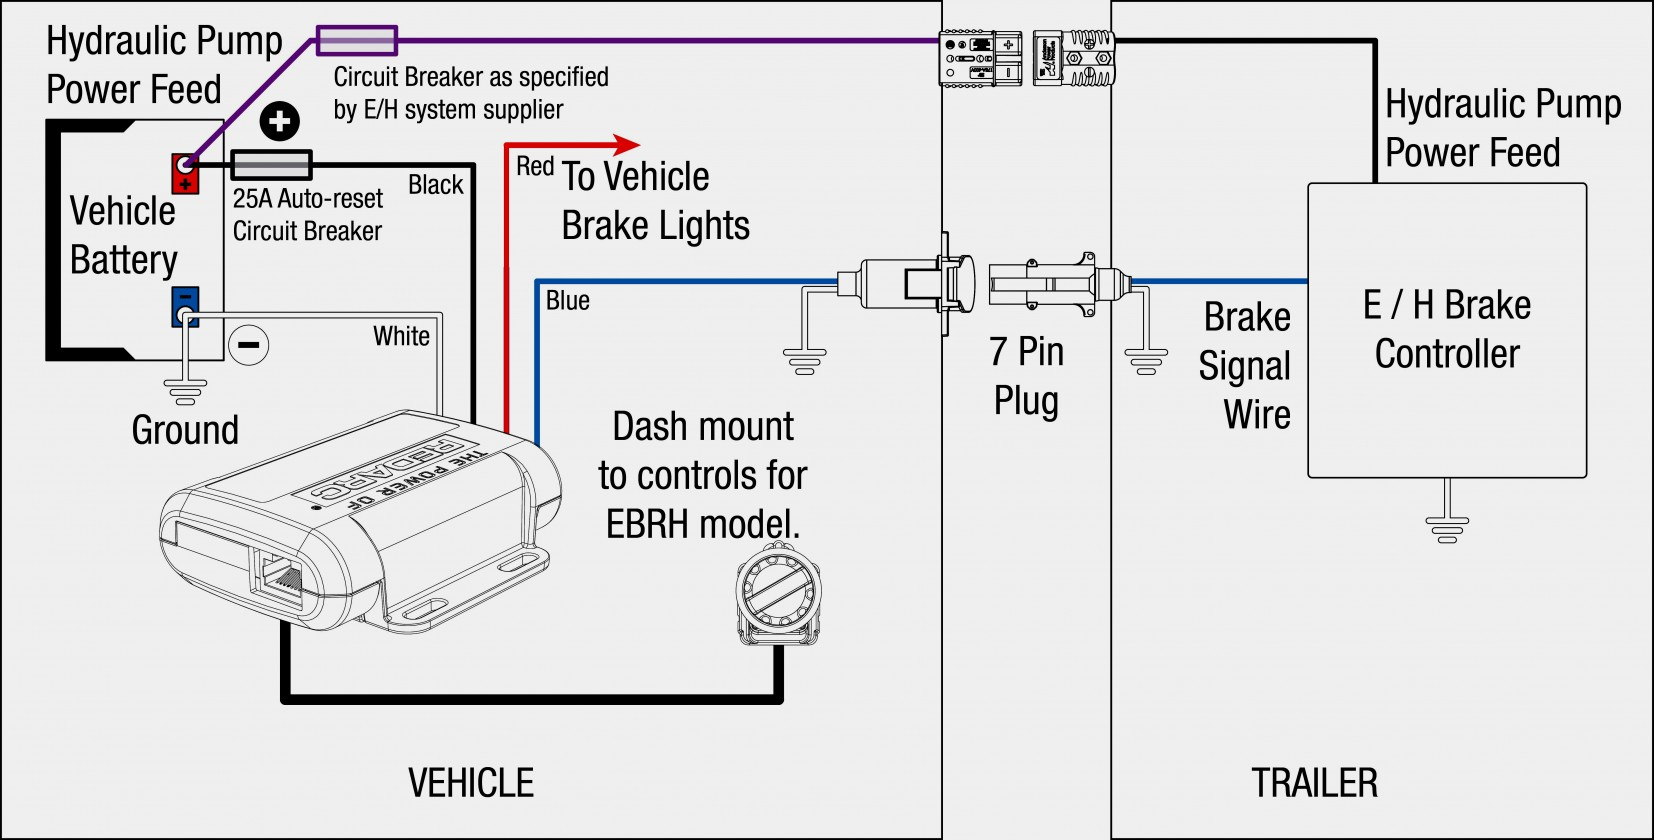 Prodigy P2 Wiring Harness Diagram To Chevy - Nordictrack Motor Wiring  Harness - ezgobattery.periihh.jeanjaures37.frWiring Diagram Resource